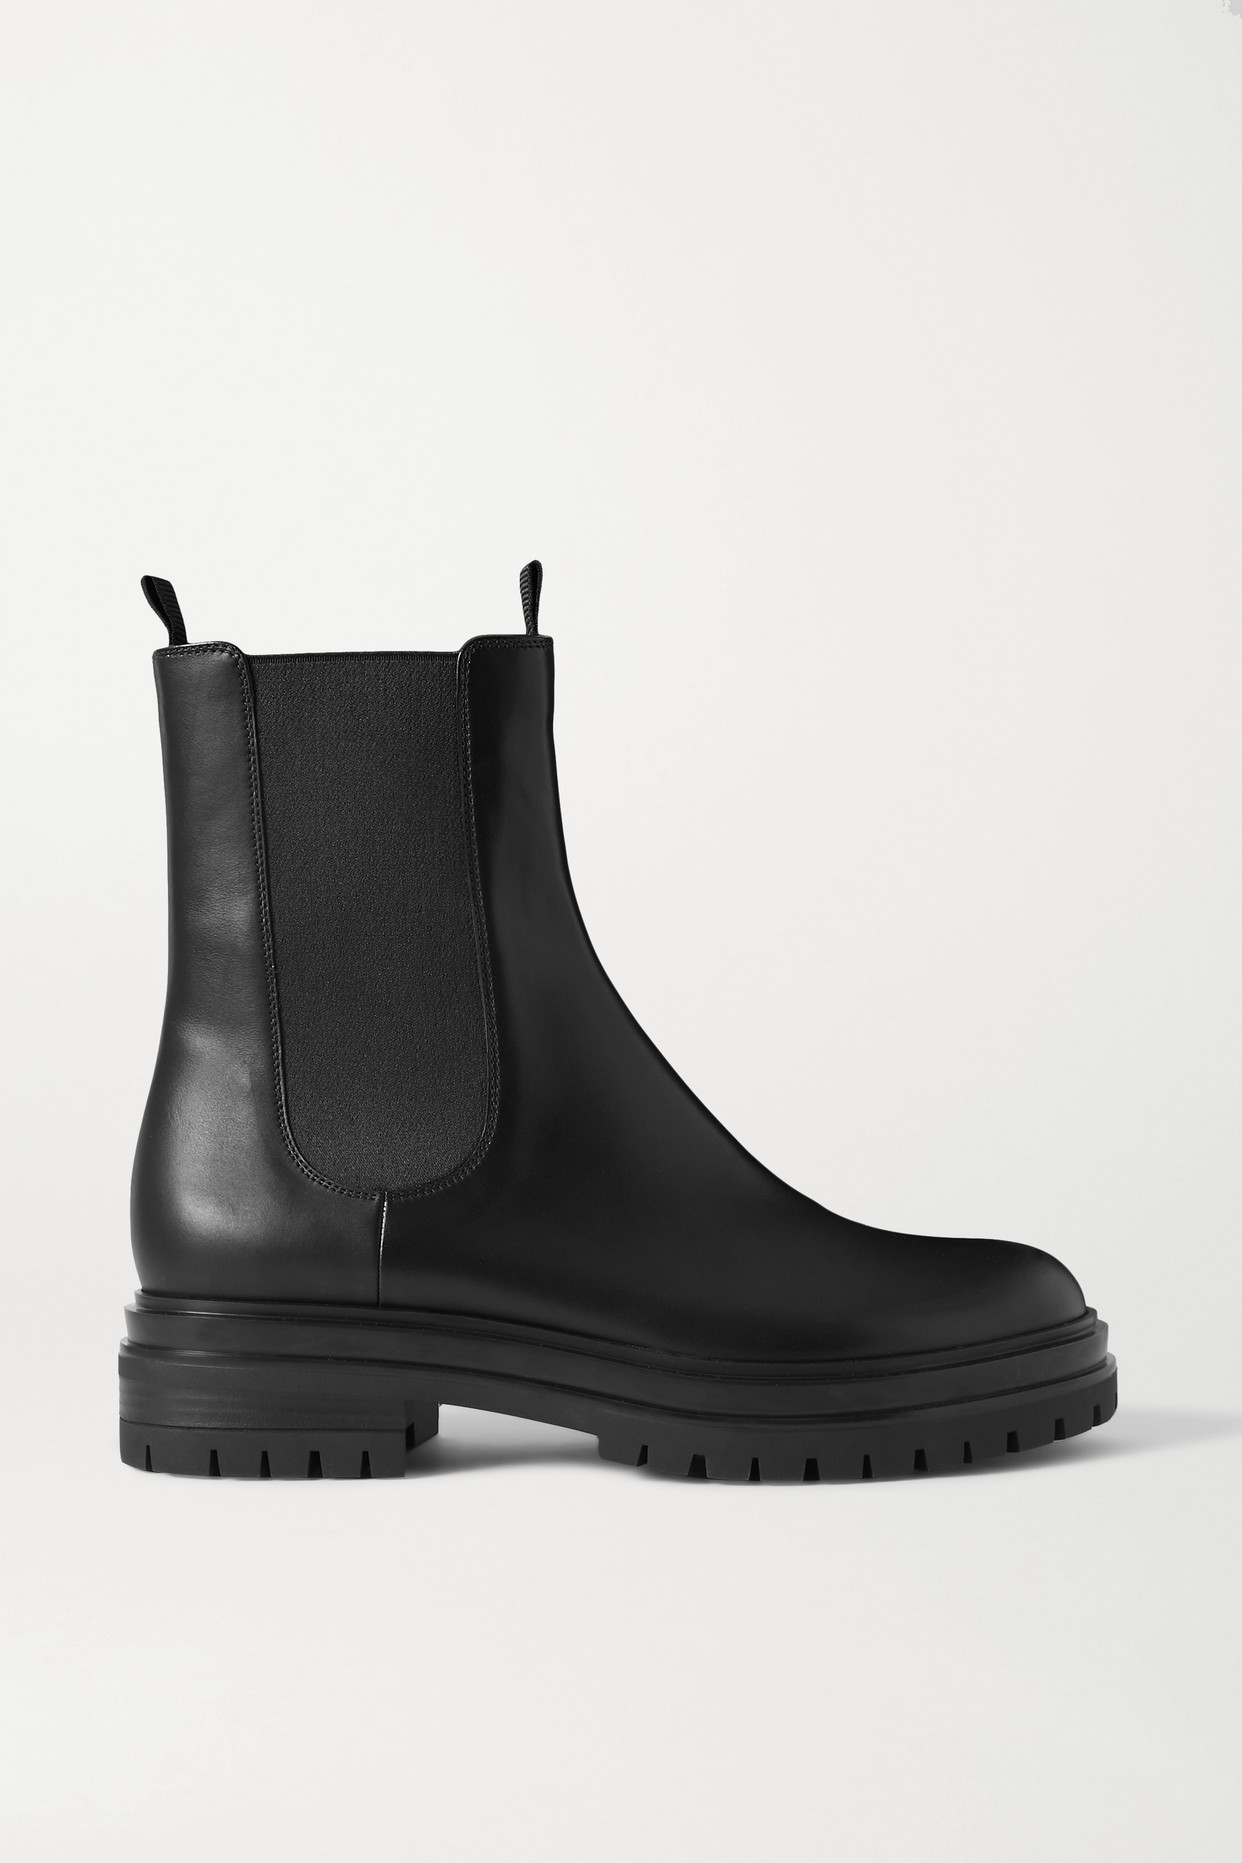 GIANVITO ROSSI - Leather Chelsea Boots - Black - IT38.5